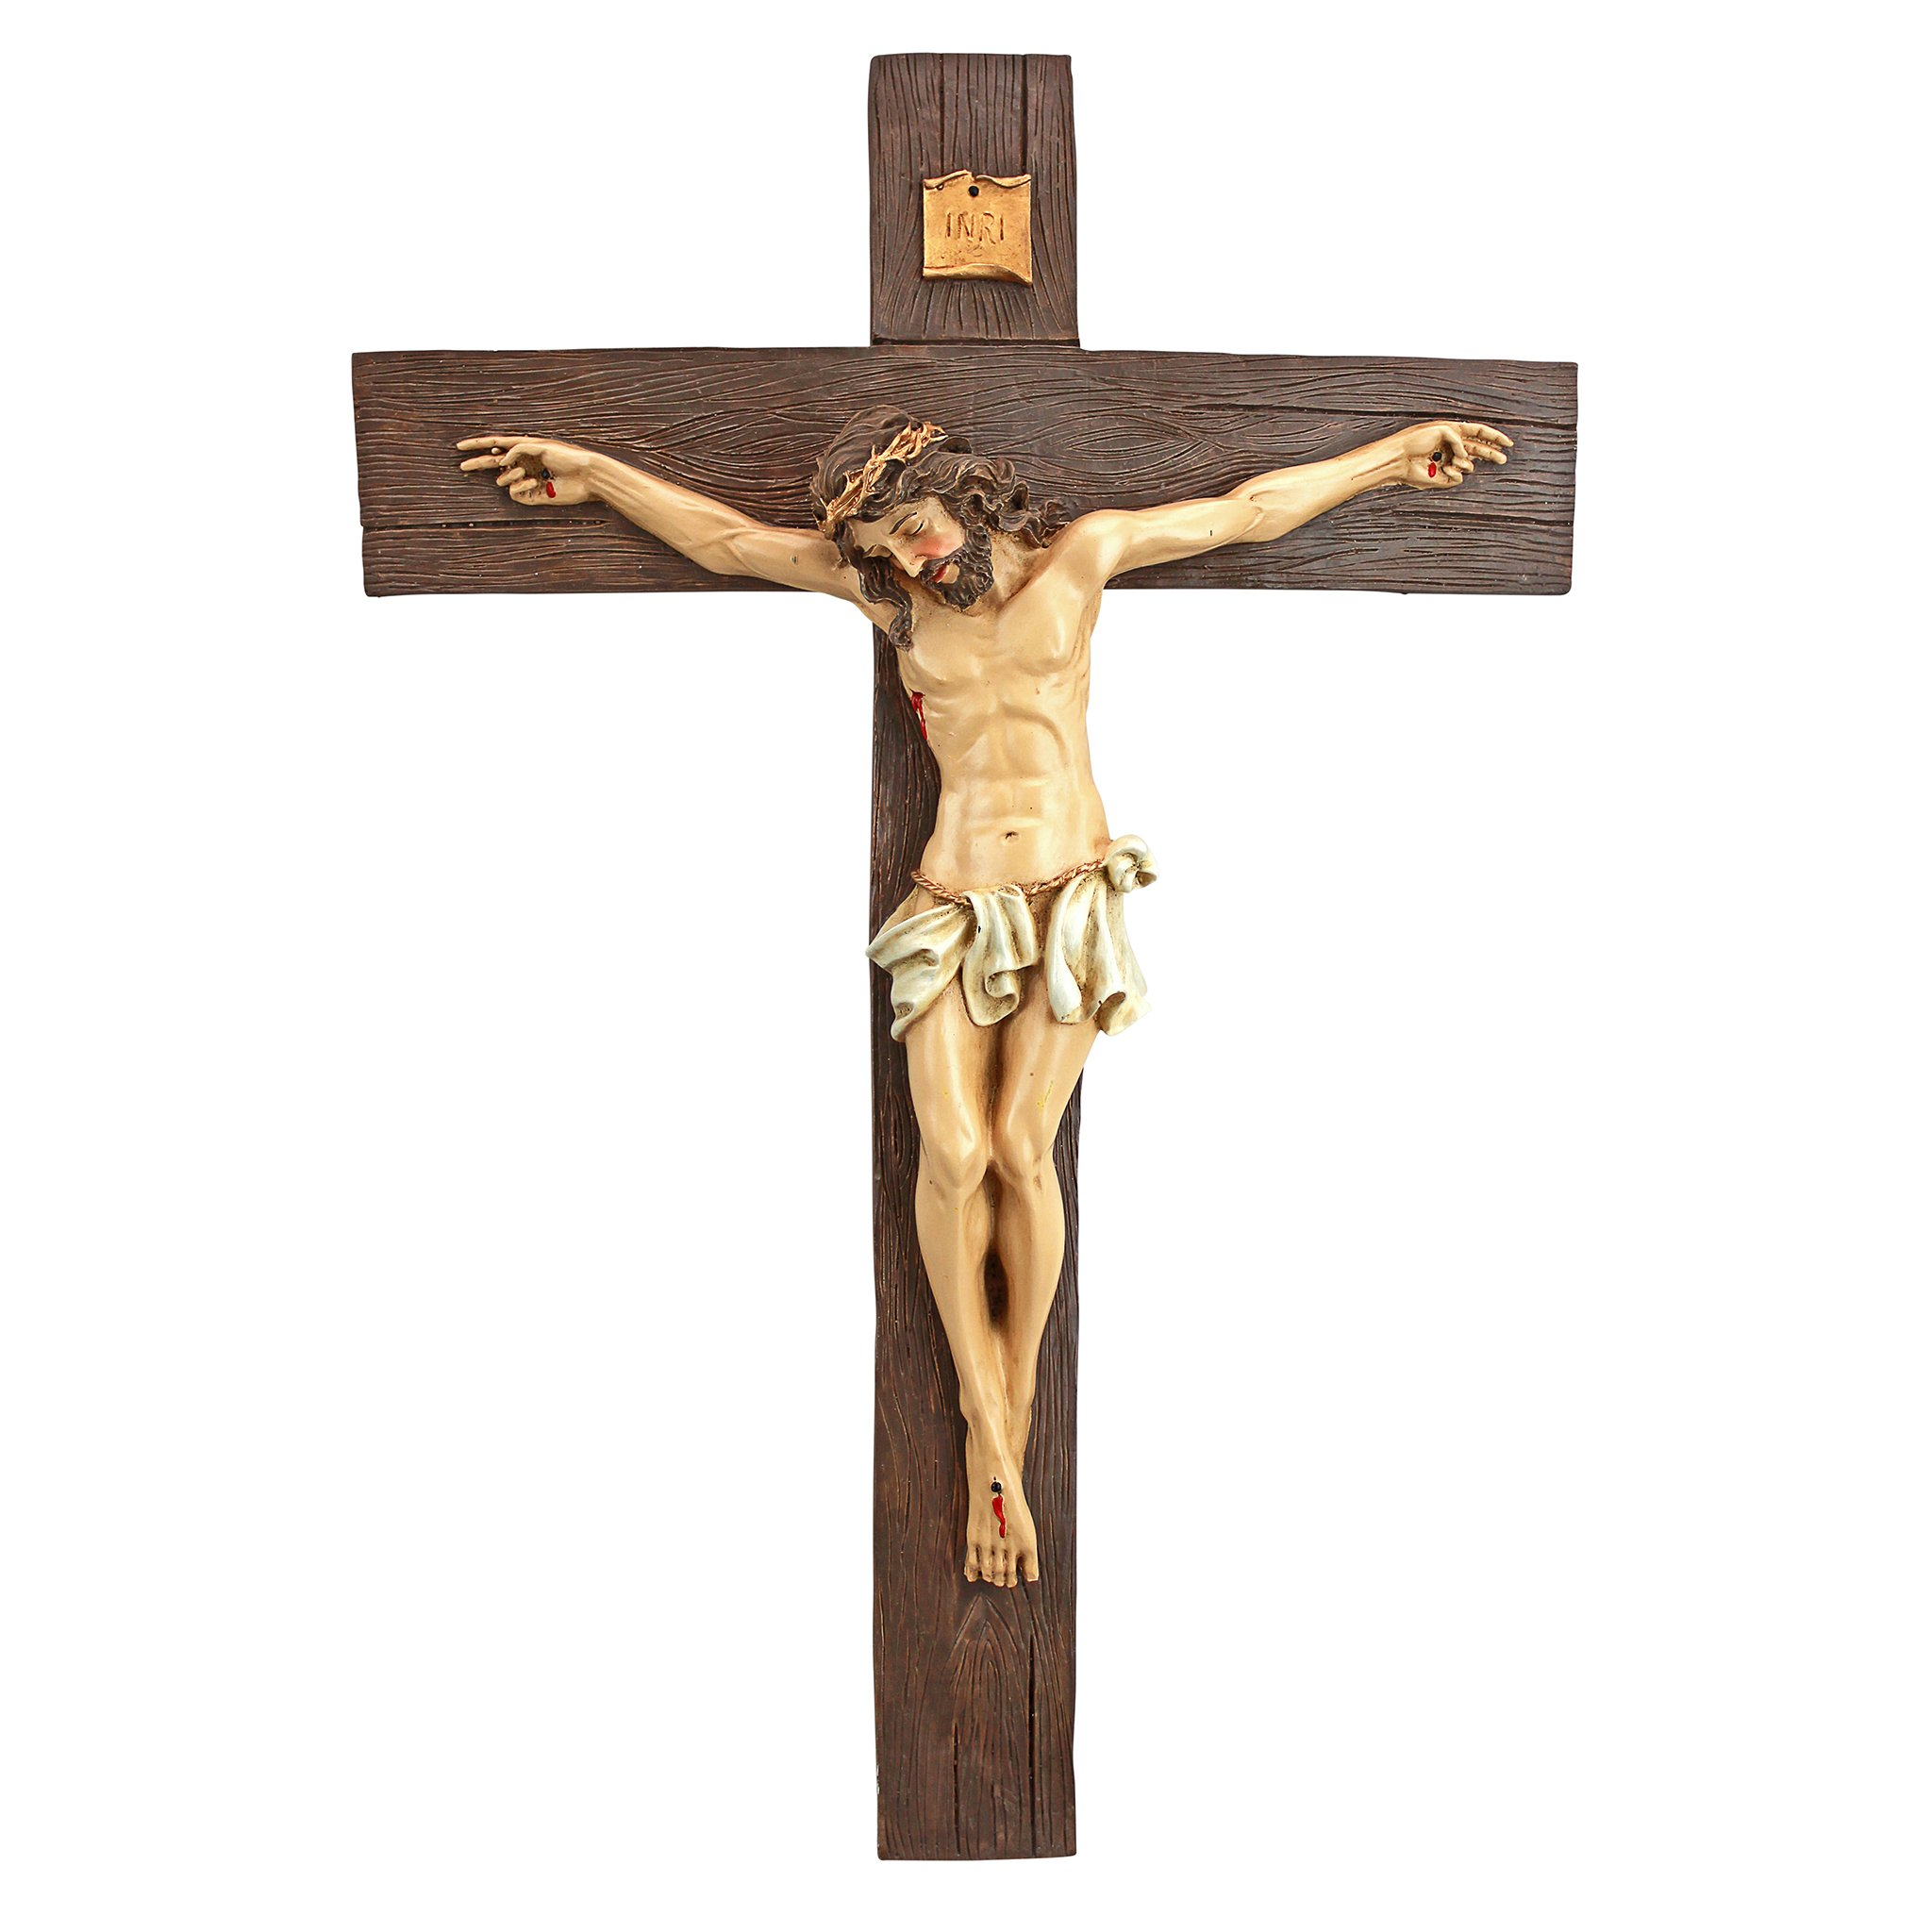 Design Toscano Crucifixion of Christ Cross Wall Sculpture: Large